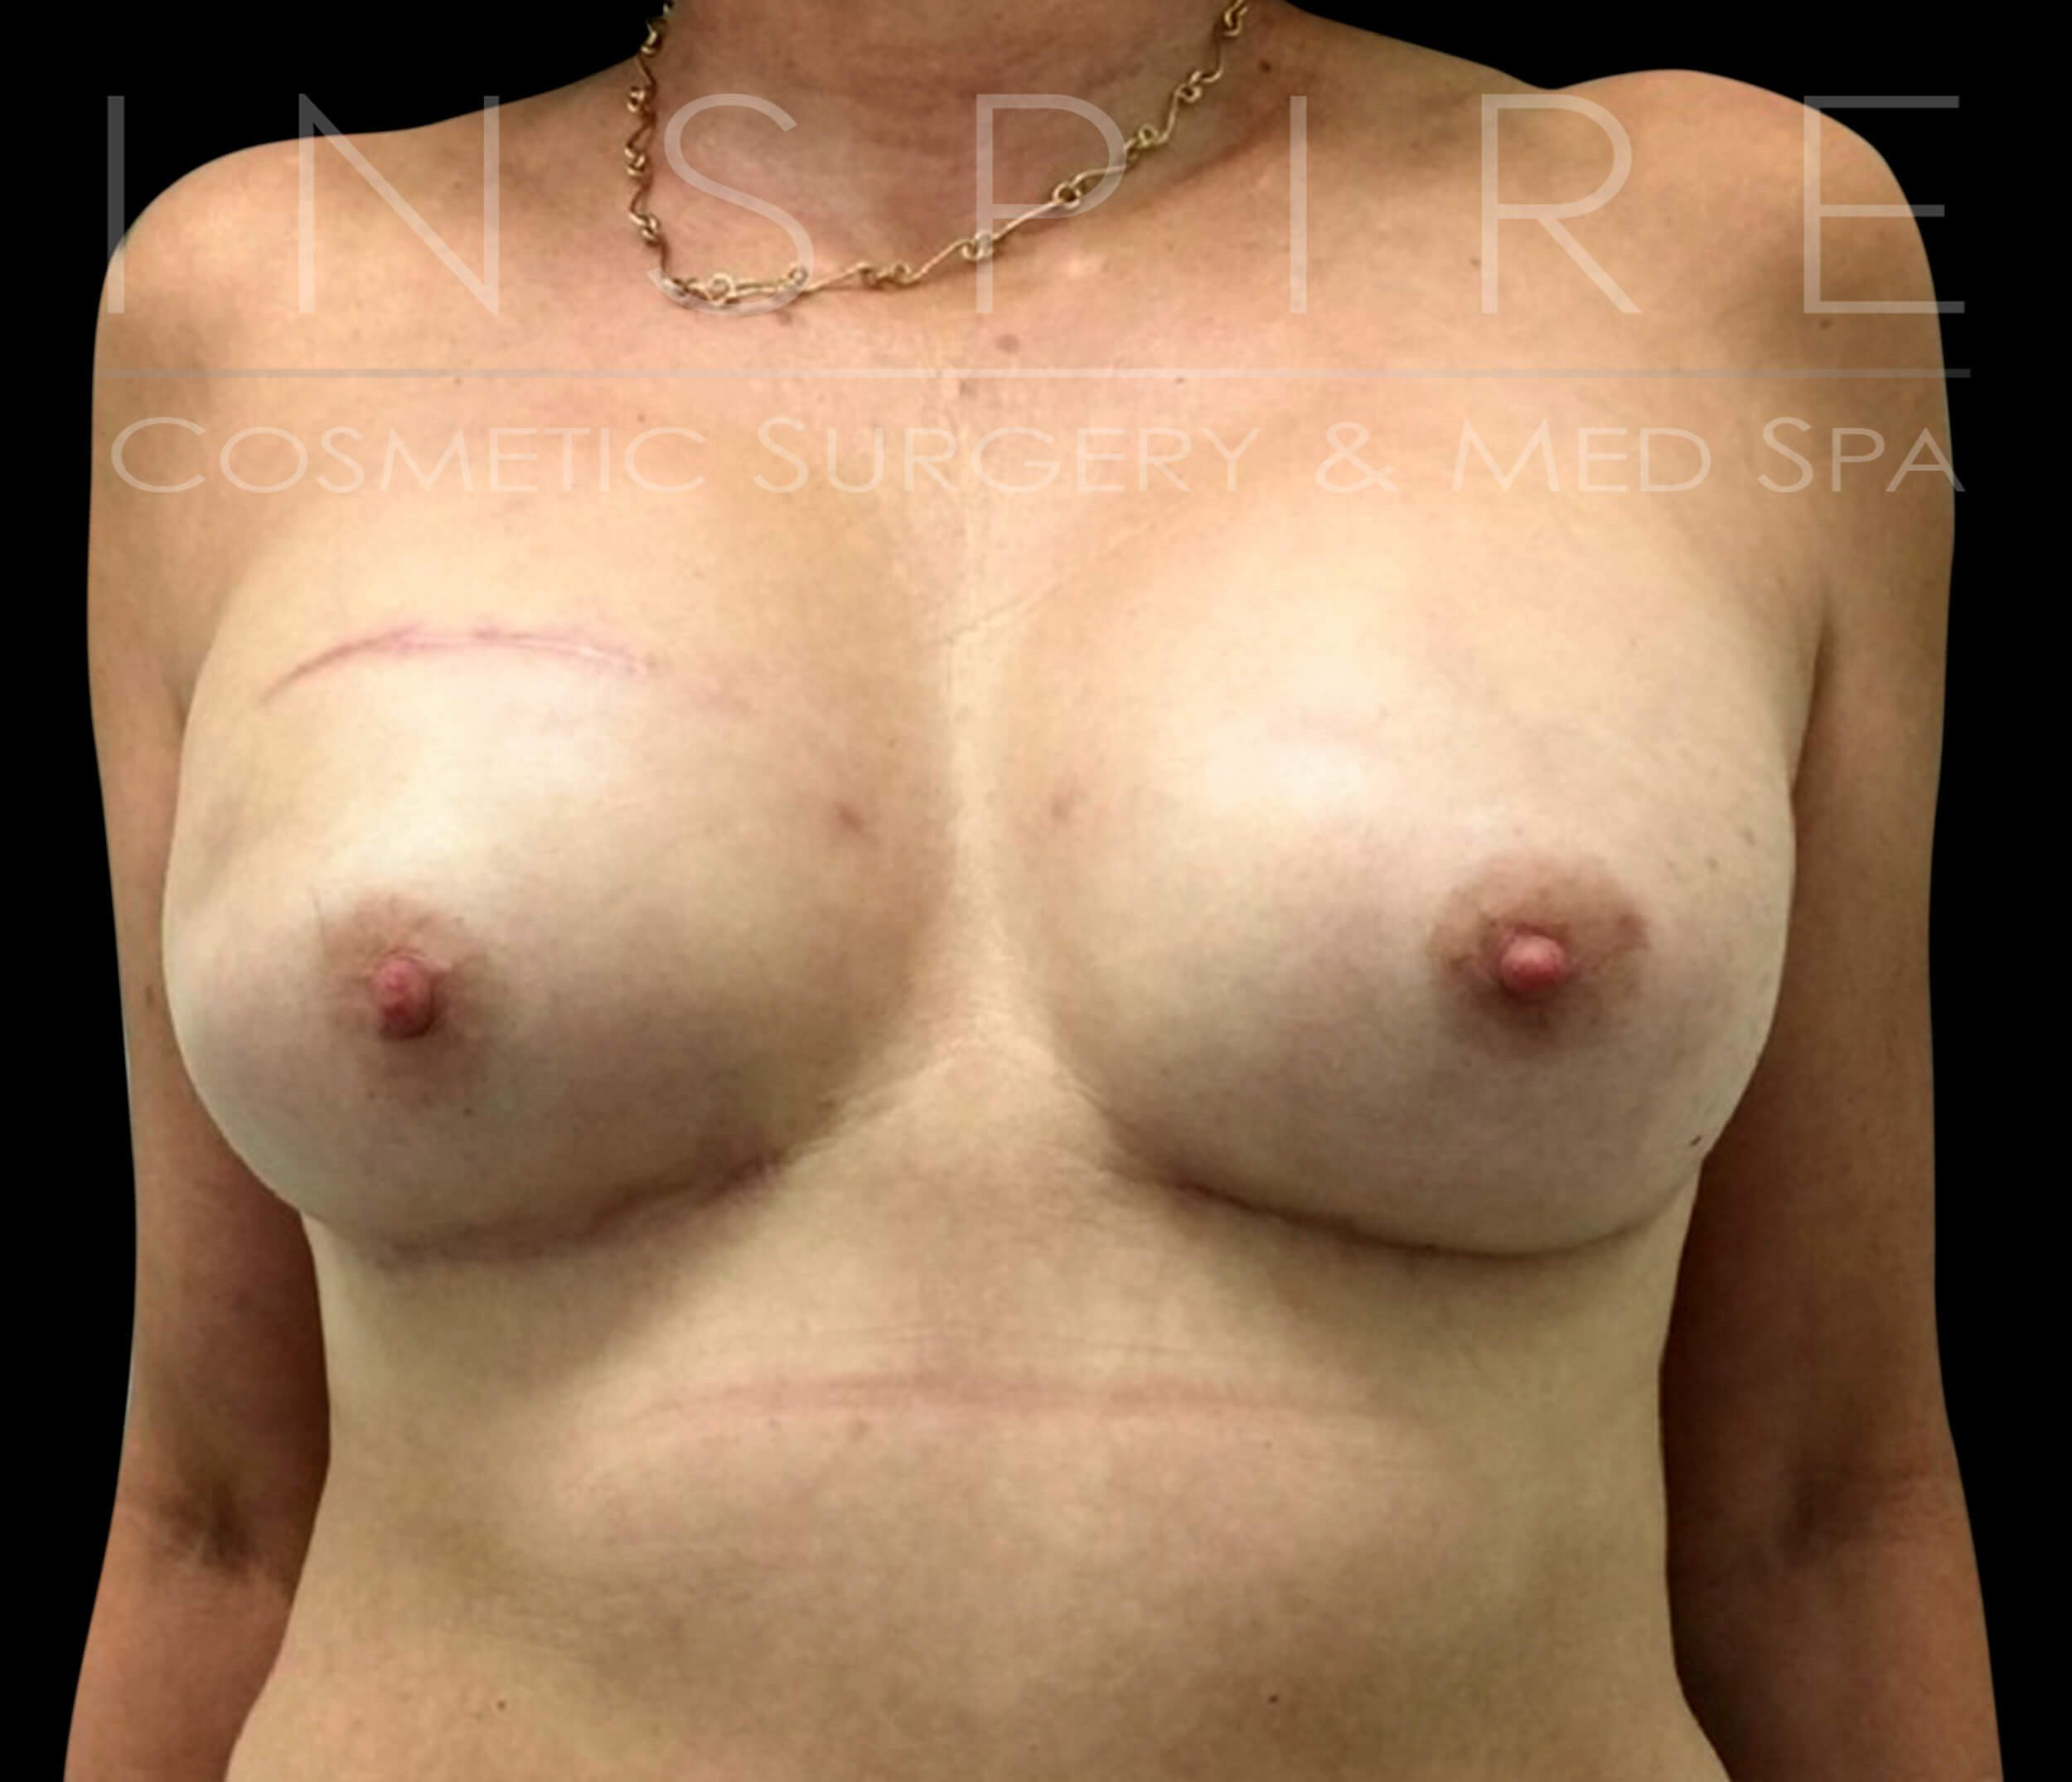 Nipple Sparing Mastectomy After